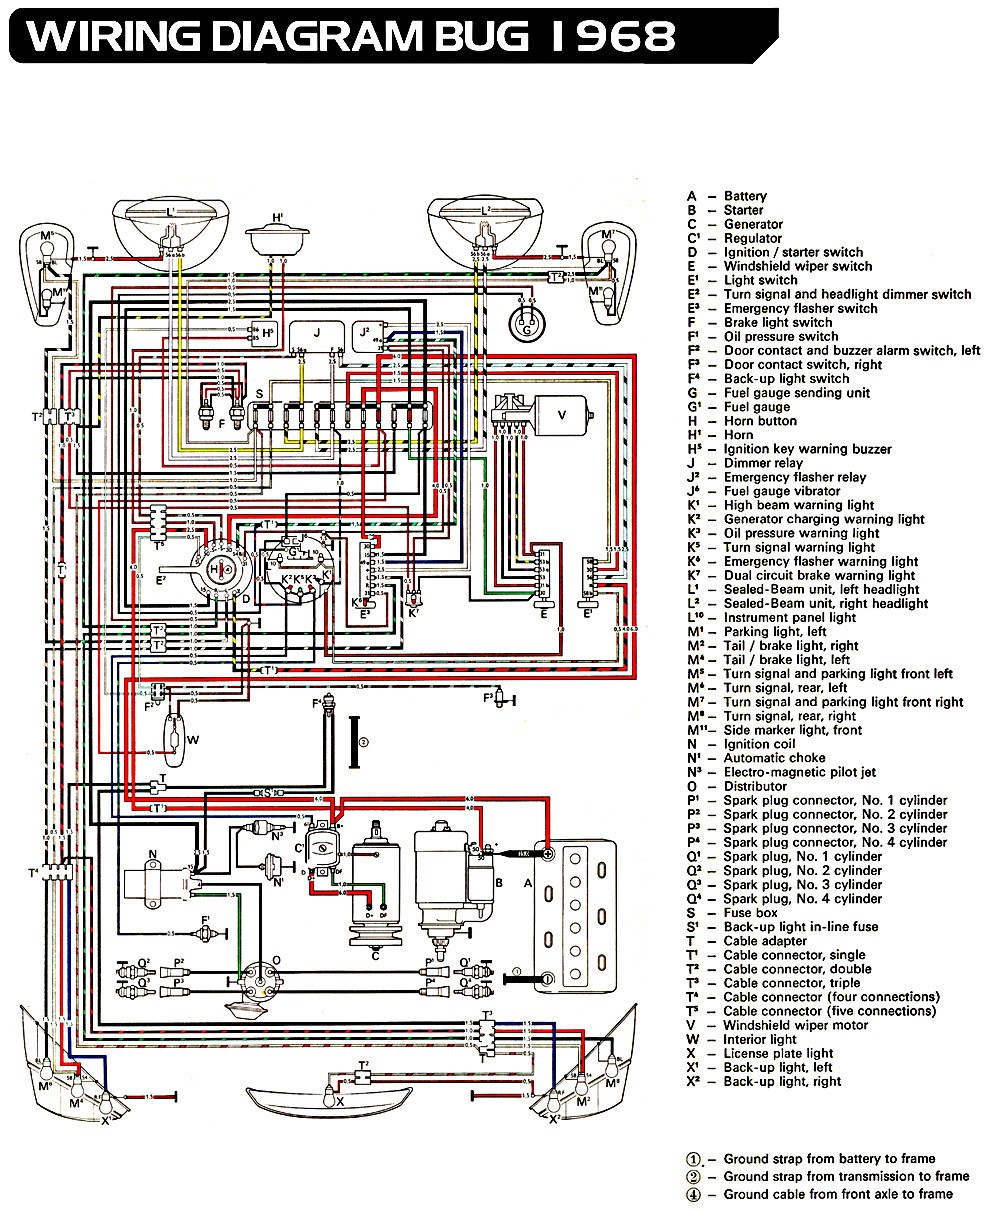 [SCHEMATICS_48YU]  5CD0 Vw New Beetle Fuse Diagram | Wiring Library | 2007 Vw New Beetle Wiper Motor Wiring Diagram |  | Wiring Library